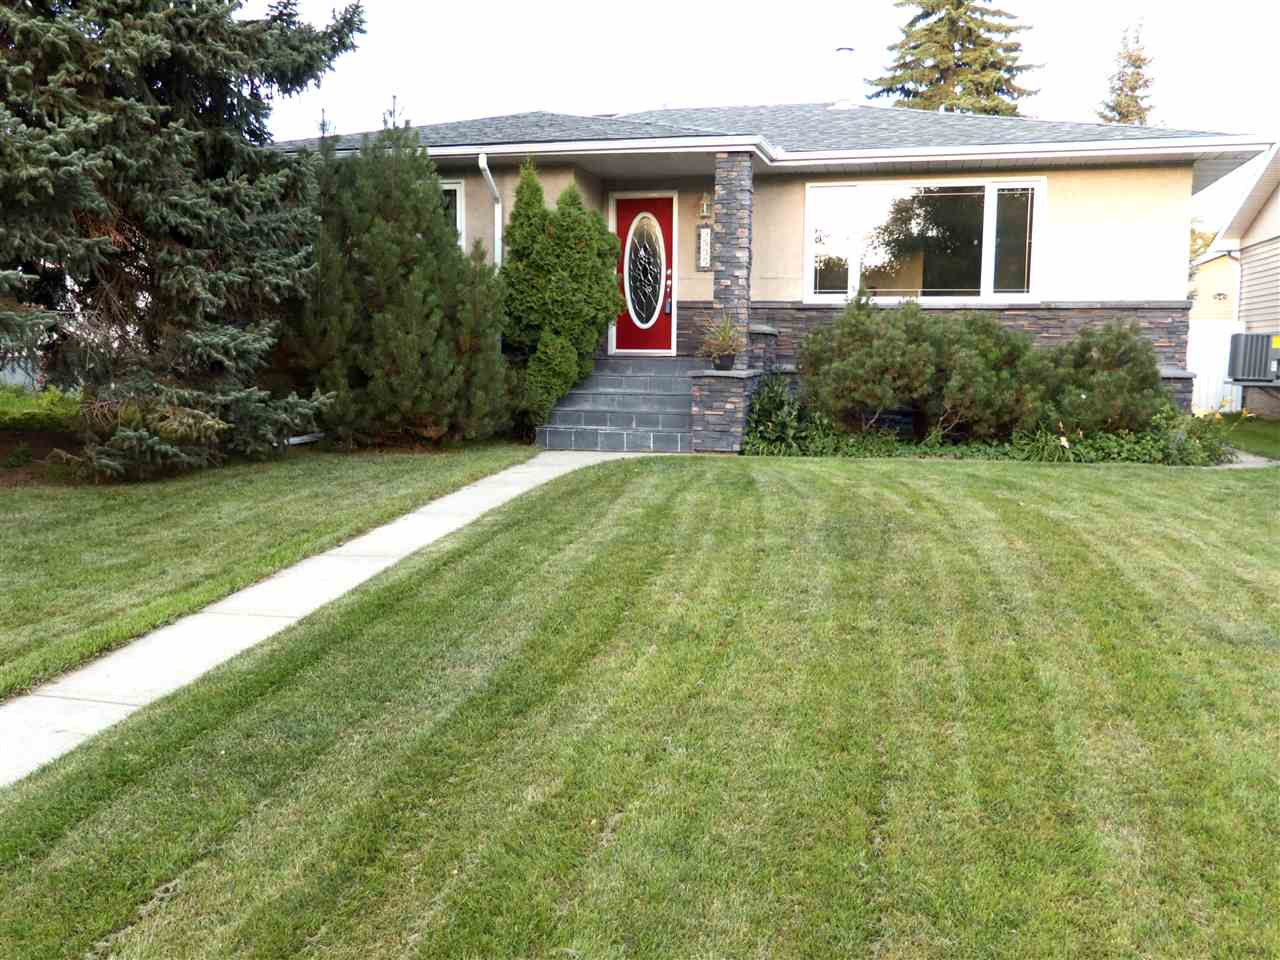 MLS® listing #E4153856 for sale located at 9535 148 Street NW